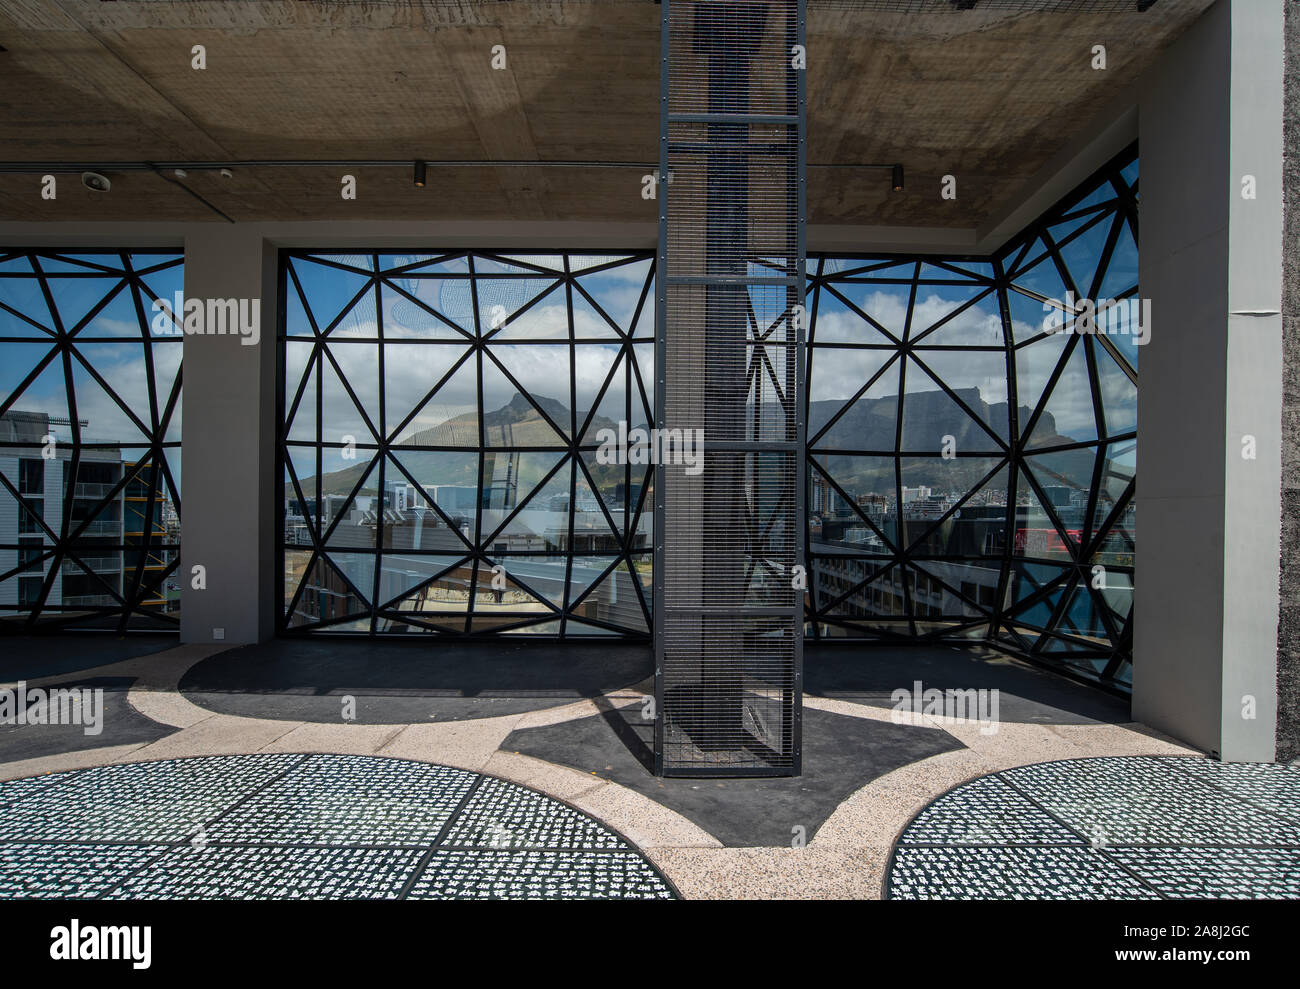 Architectural glazed panels in the Zeitz MOCCA museum of Contemporary Art Africa in Cape Town, South Africa Stock Photo